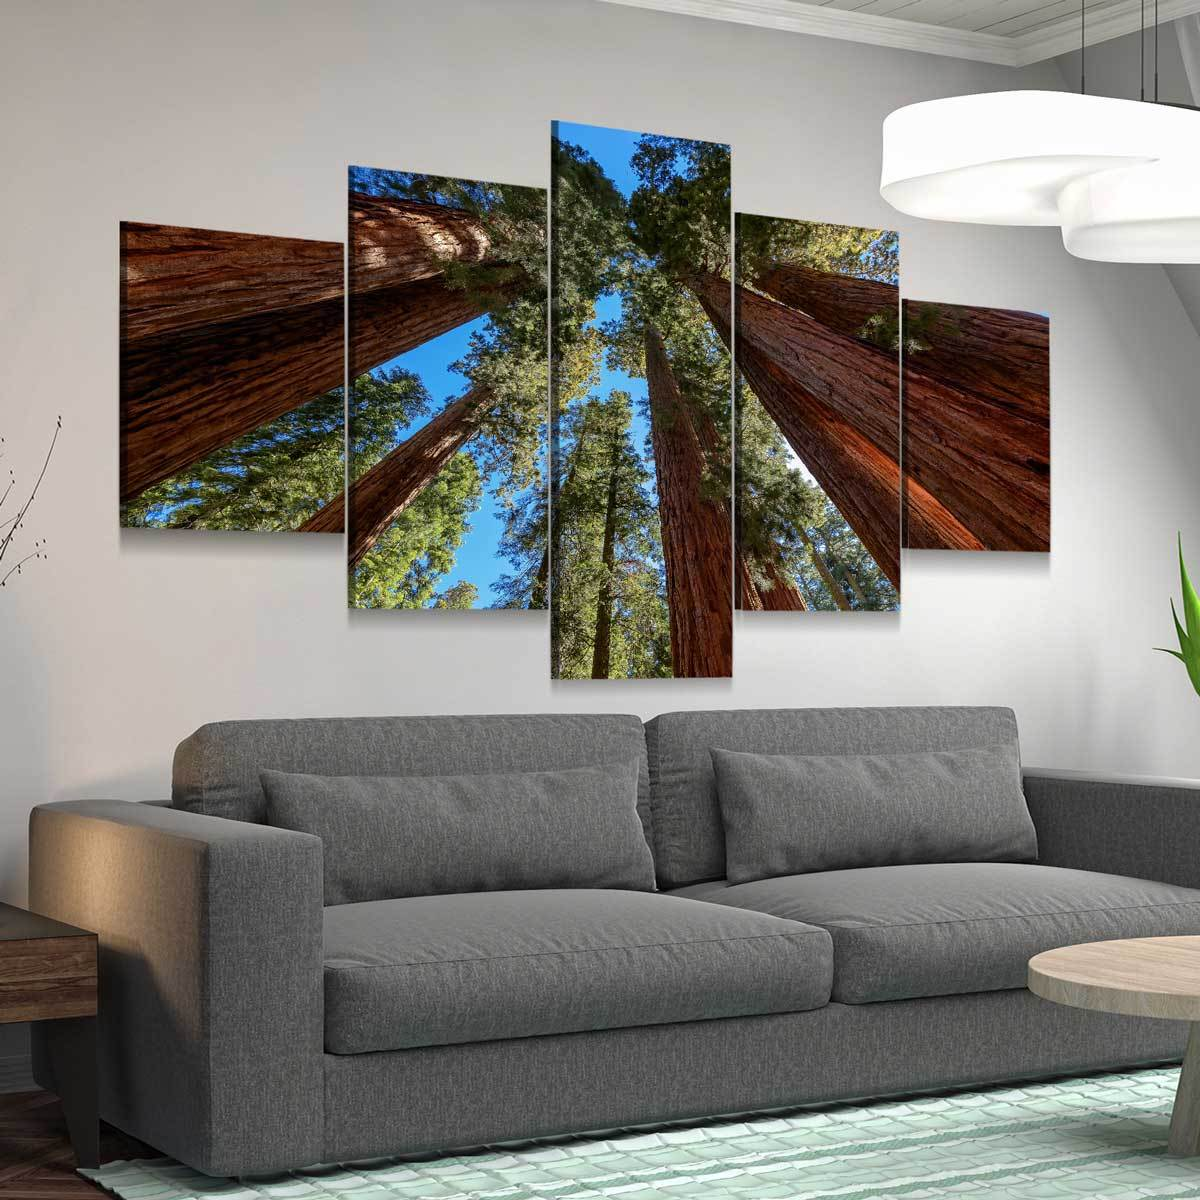 Giant Sequoia Trees 5 panel canvas wall art